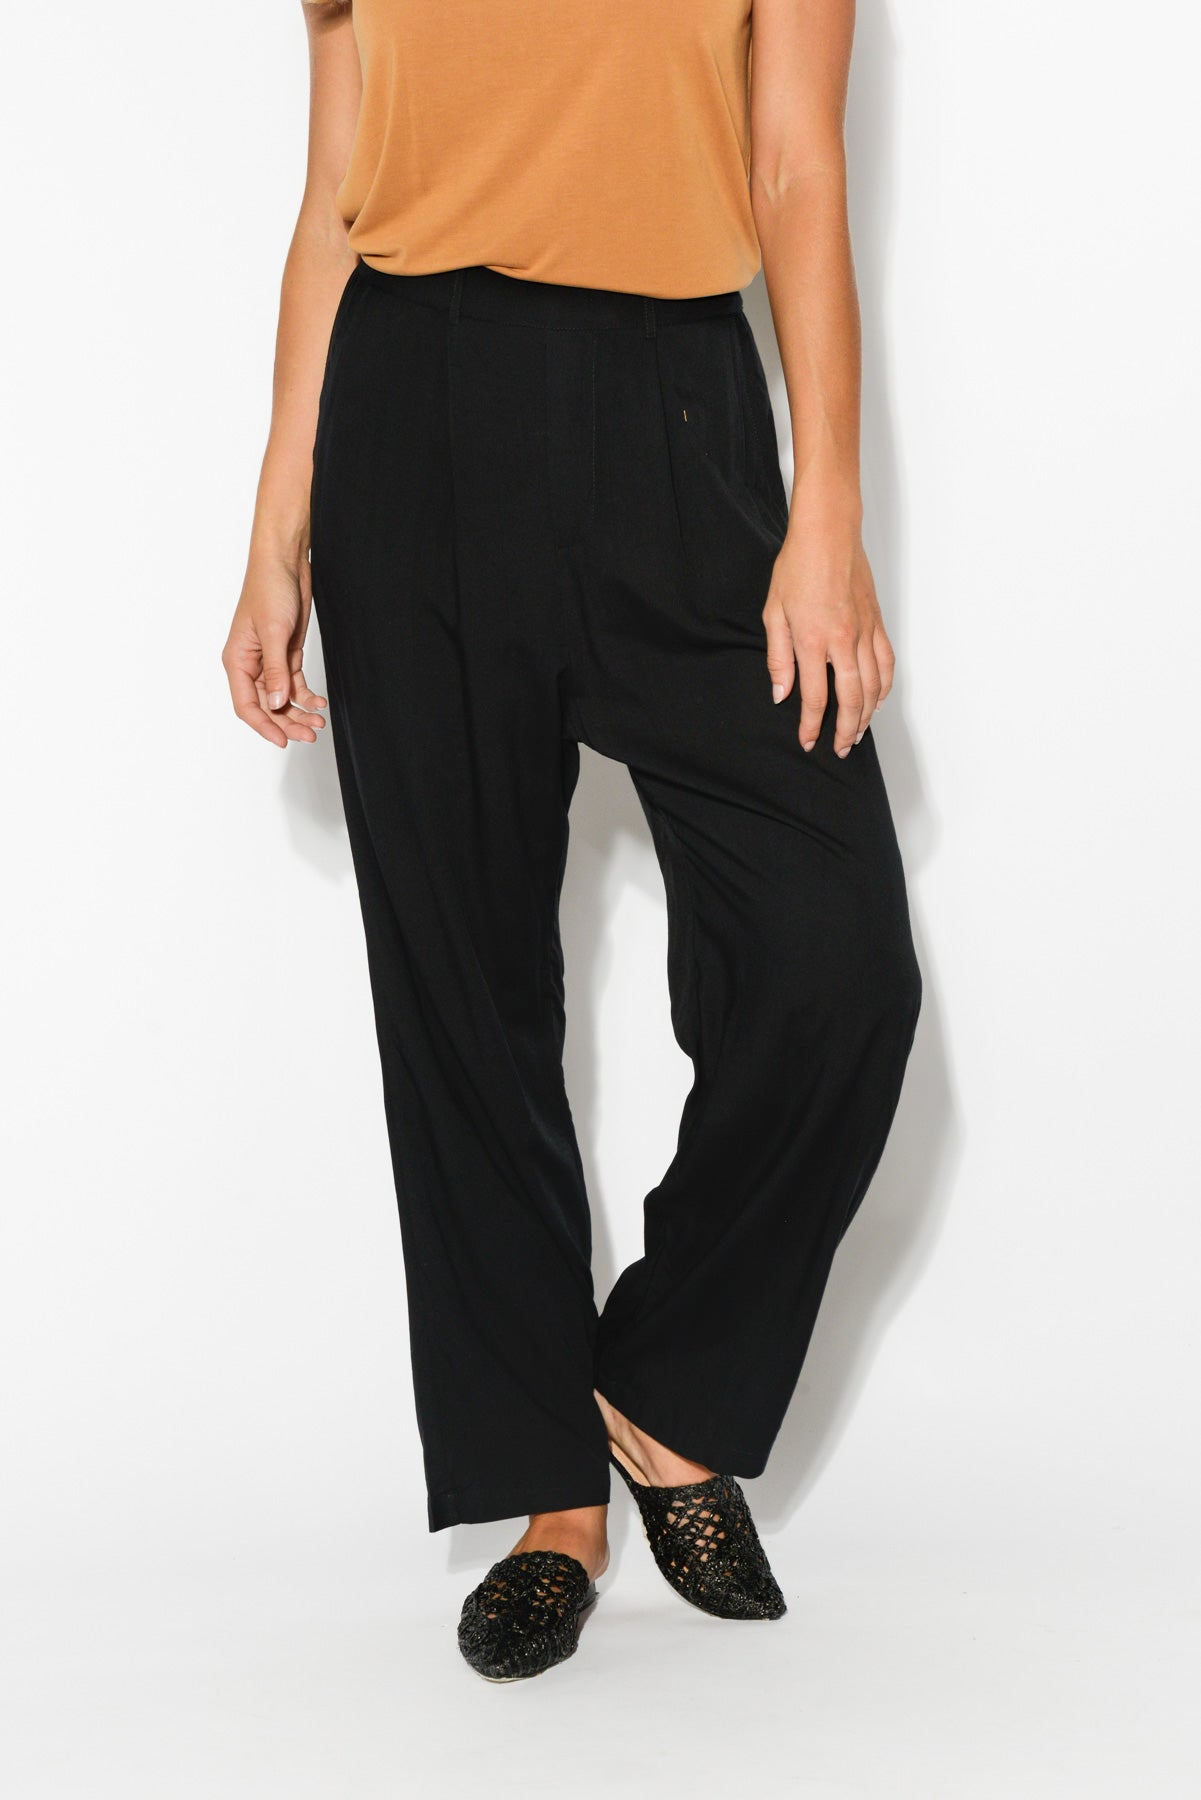 Ginny Black Straight Pant - Blue Bungalow